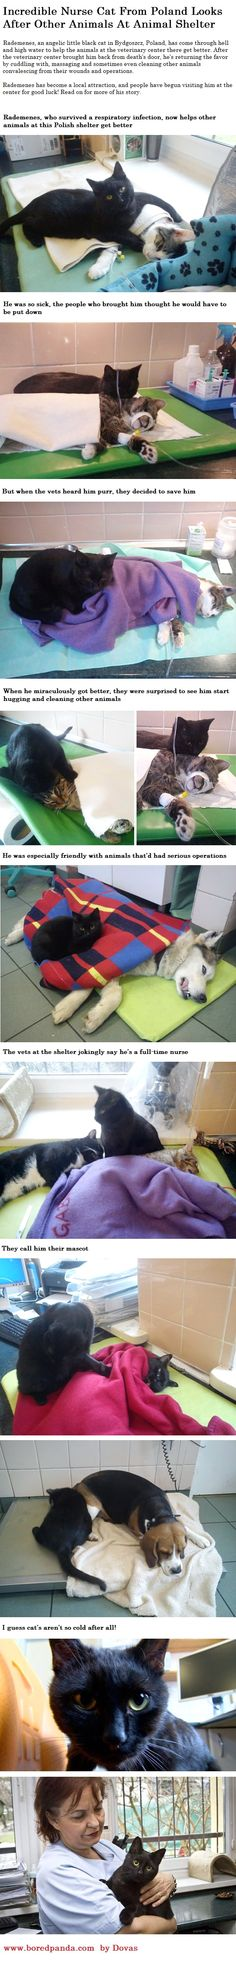 Incredible Nurse Cat From Poland Looks After Other Animals At Animal Shelter. http://www.boredpanda.com/veterinary-nurse-cat-hugs-shelter-animals-radamenes-bydgoszcz-poland/?afterlogin=savevote&post=194920&score=1